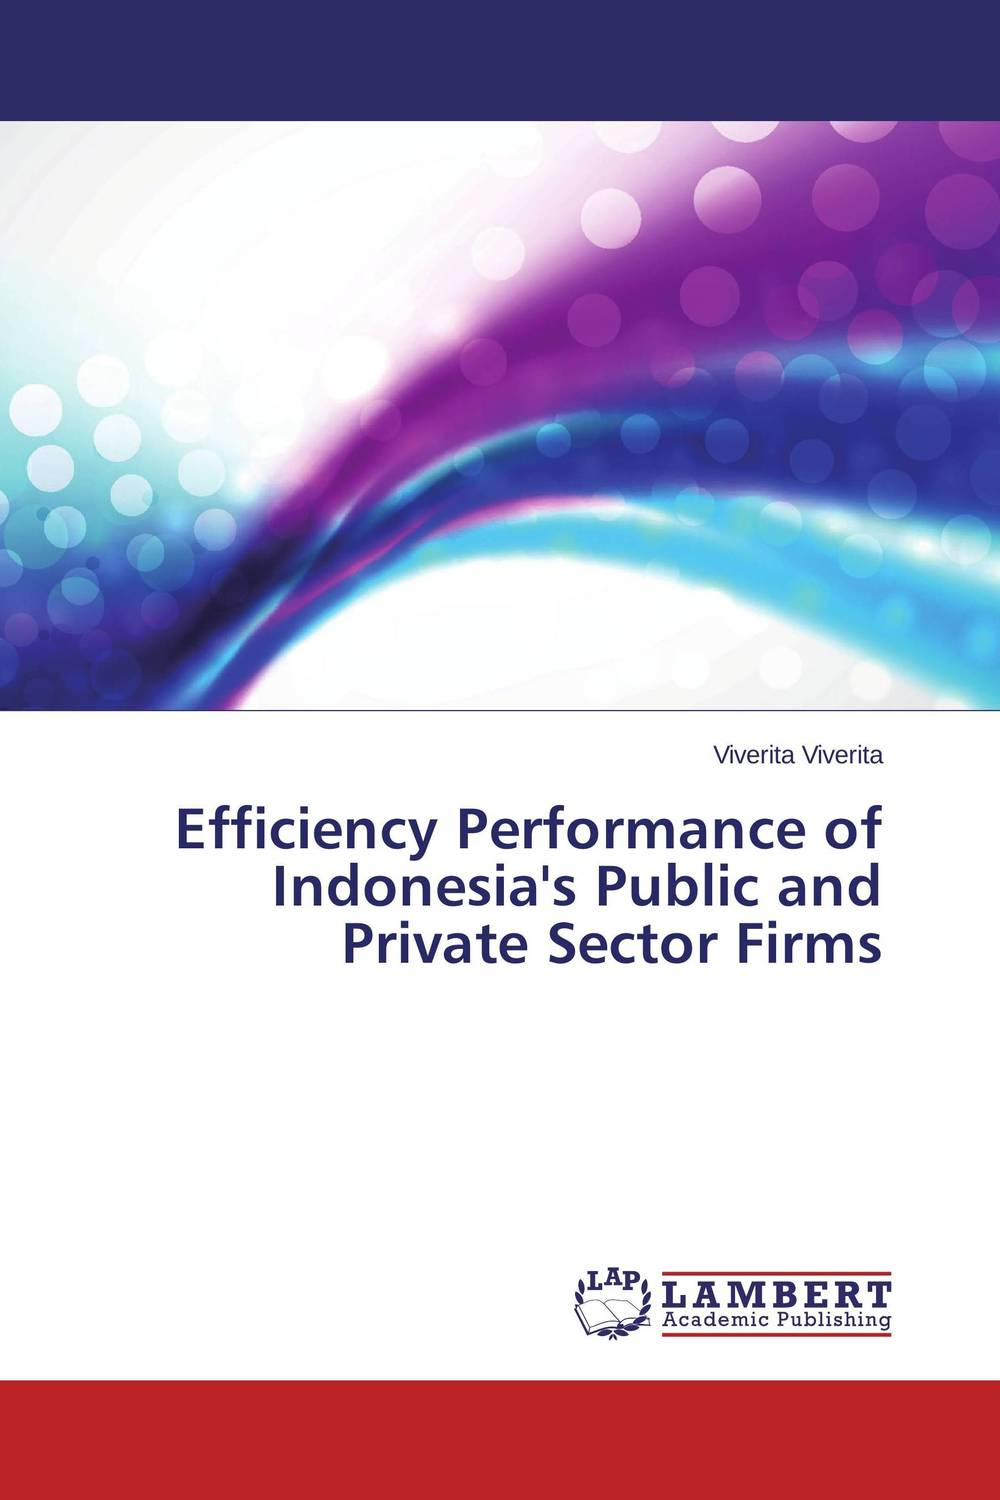 Efficiency Performance of Indonesia's Public and Private Sector Firms